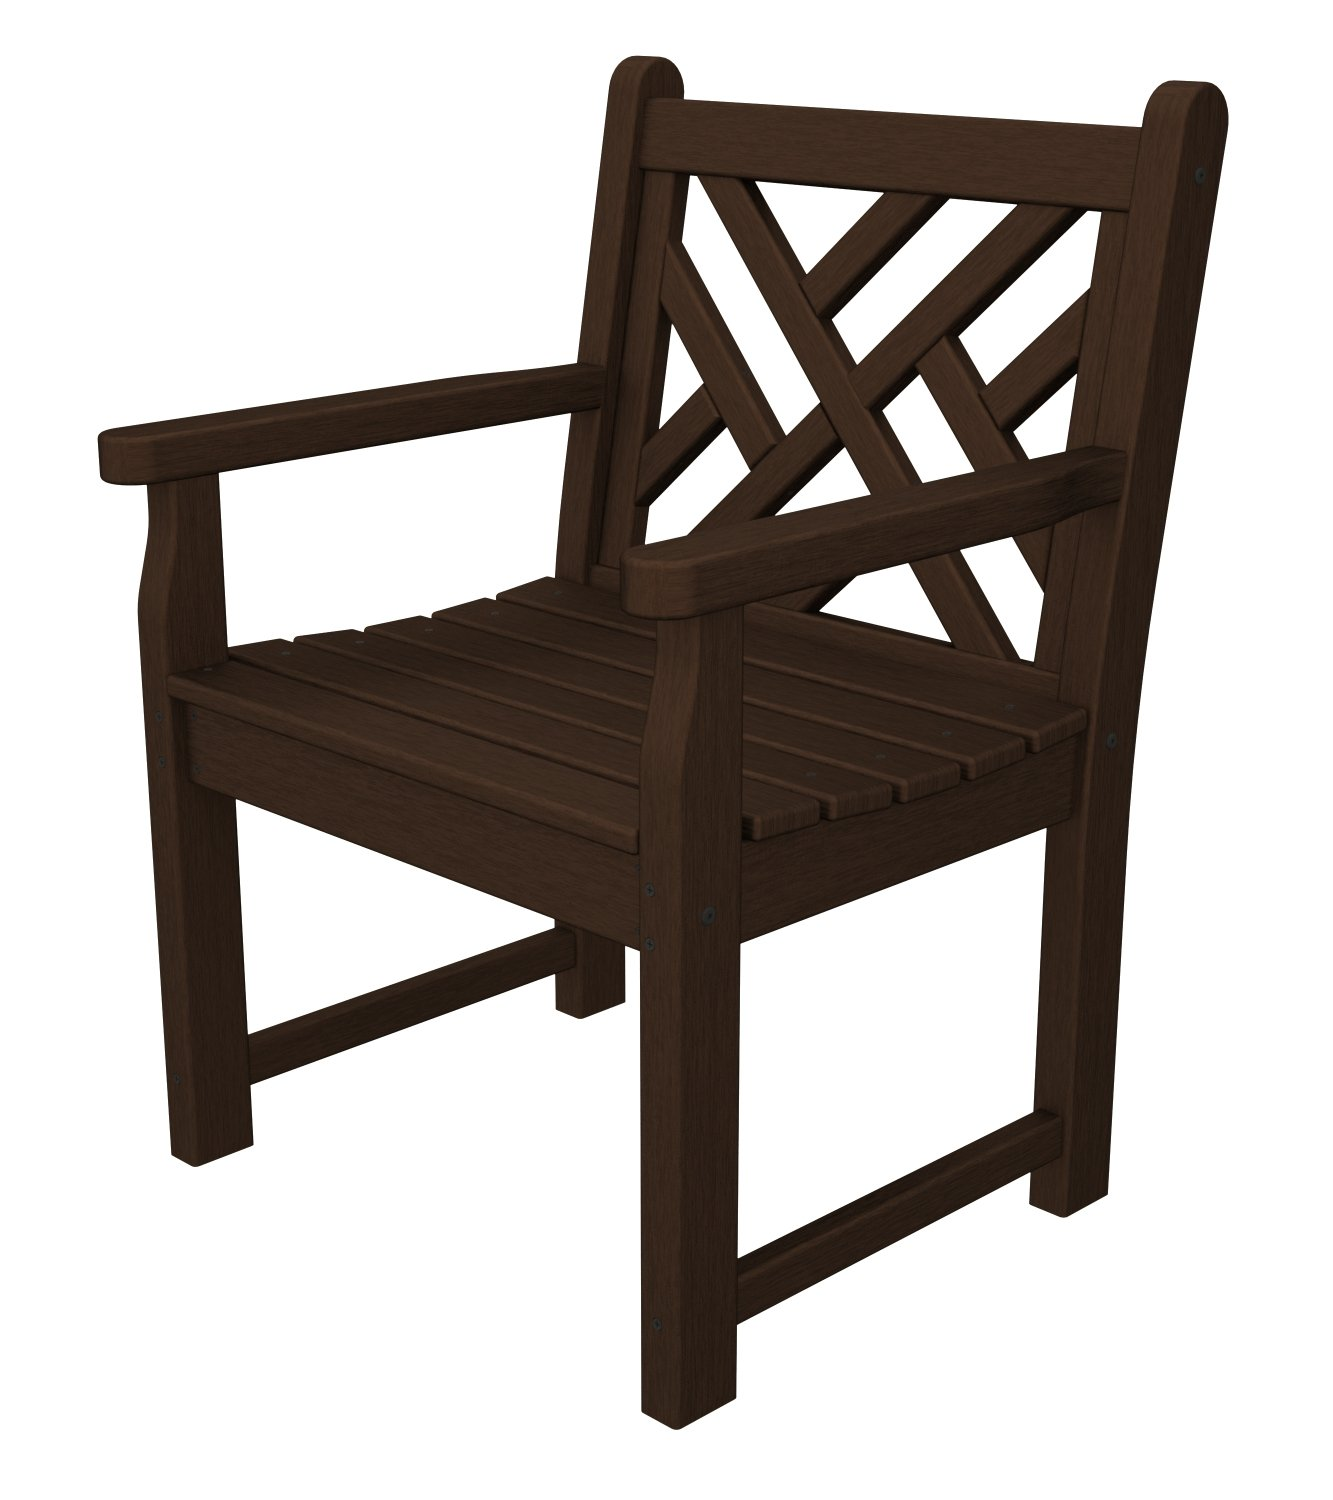 Chippendale arm chair - Amazon Com Polywood Cdb24wh Chippendale Garden Arm Chair White Outdoor Benches Patio Lawn Garden